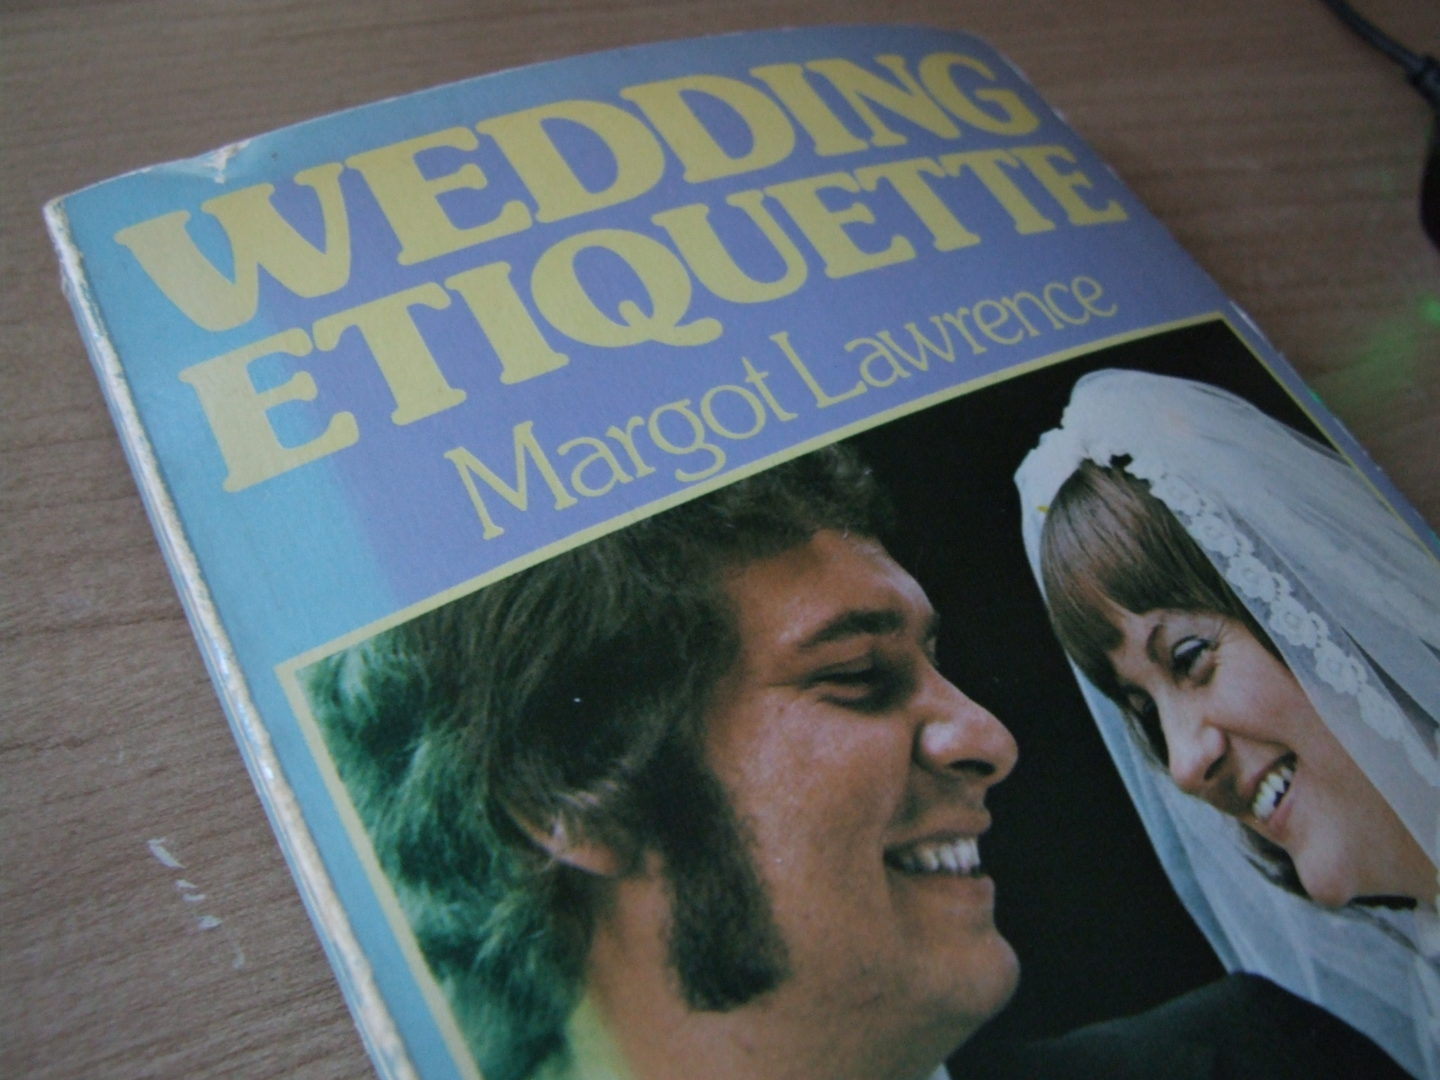 The Little Book of Wedding Etiquette